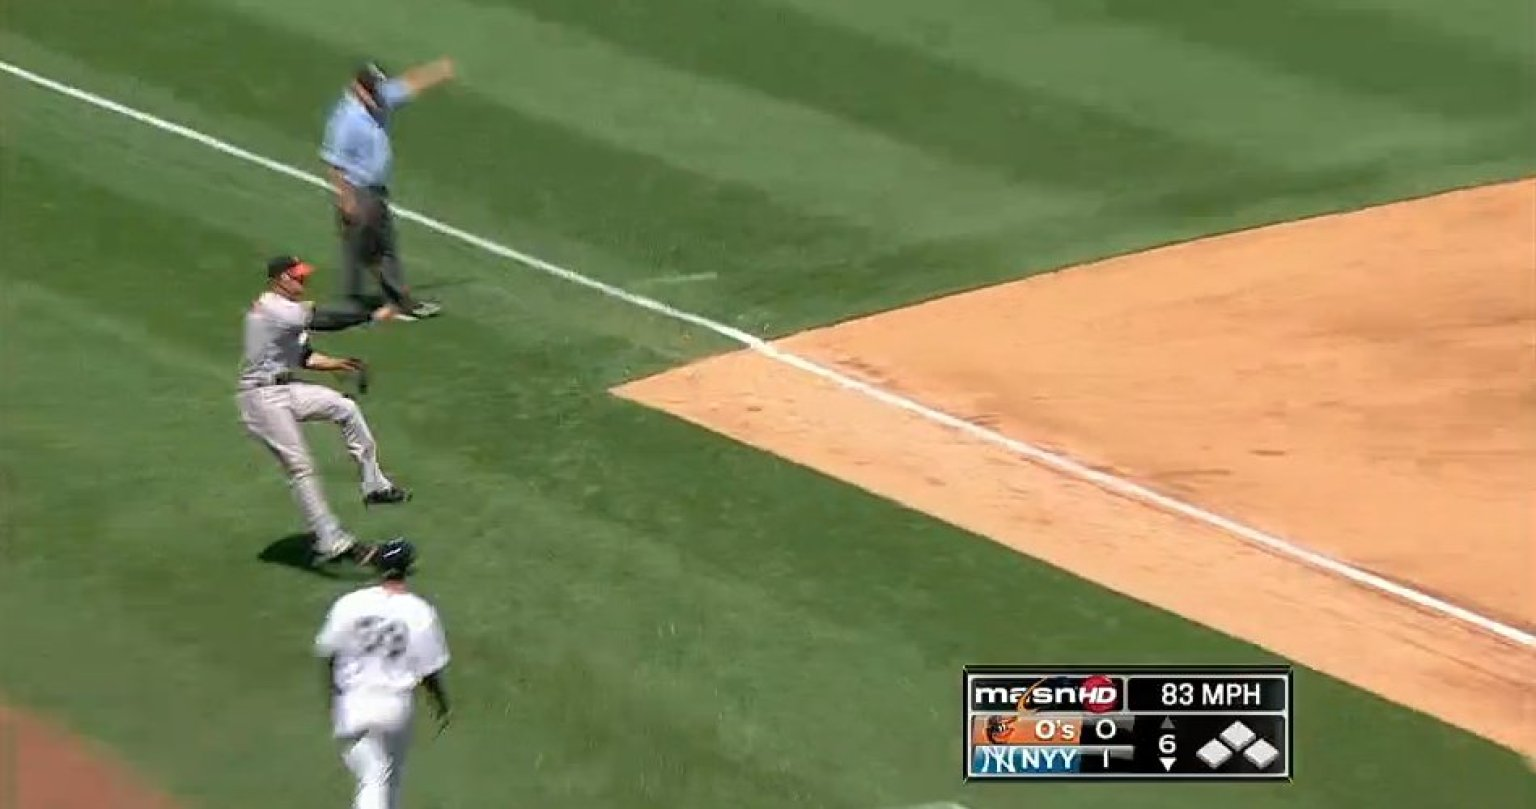 manny machado robs luis cruz of hit with outstanding